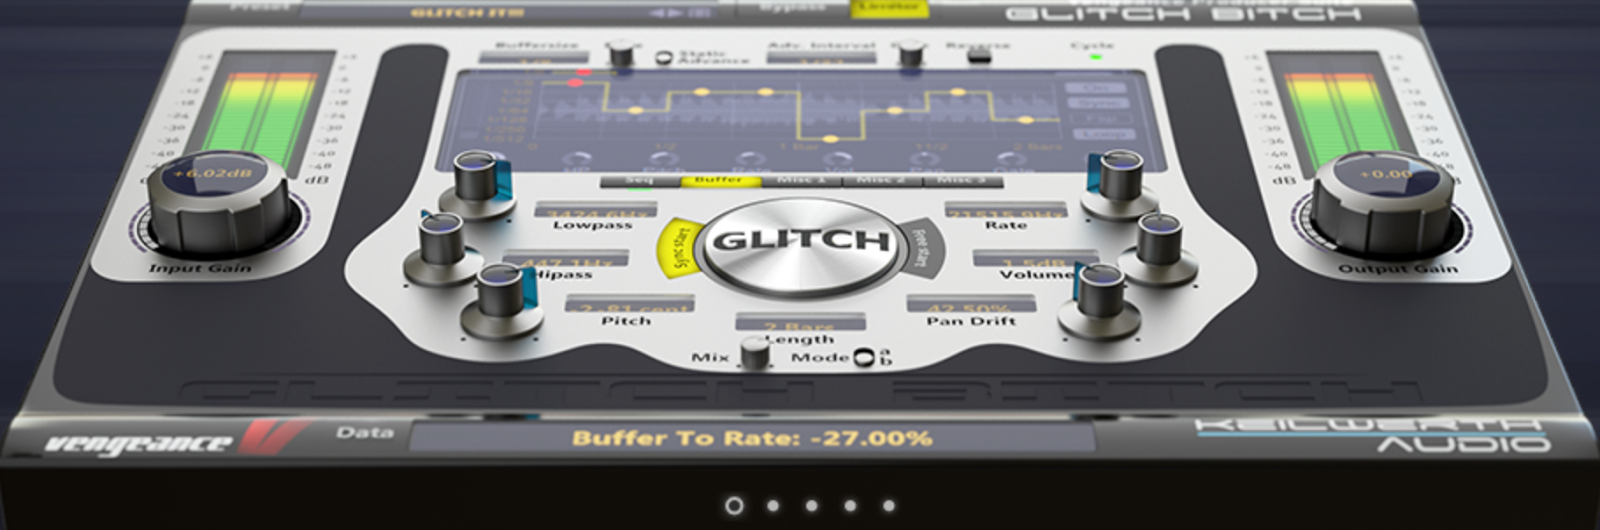 cymatics-glitch vst-glitch bitch